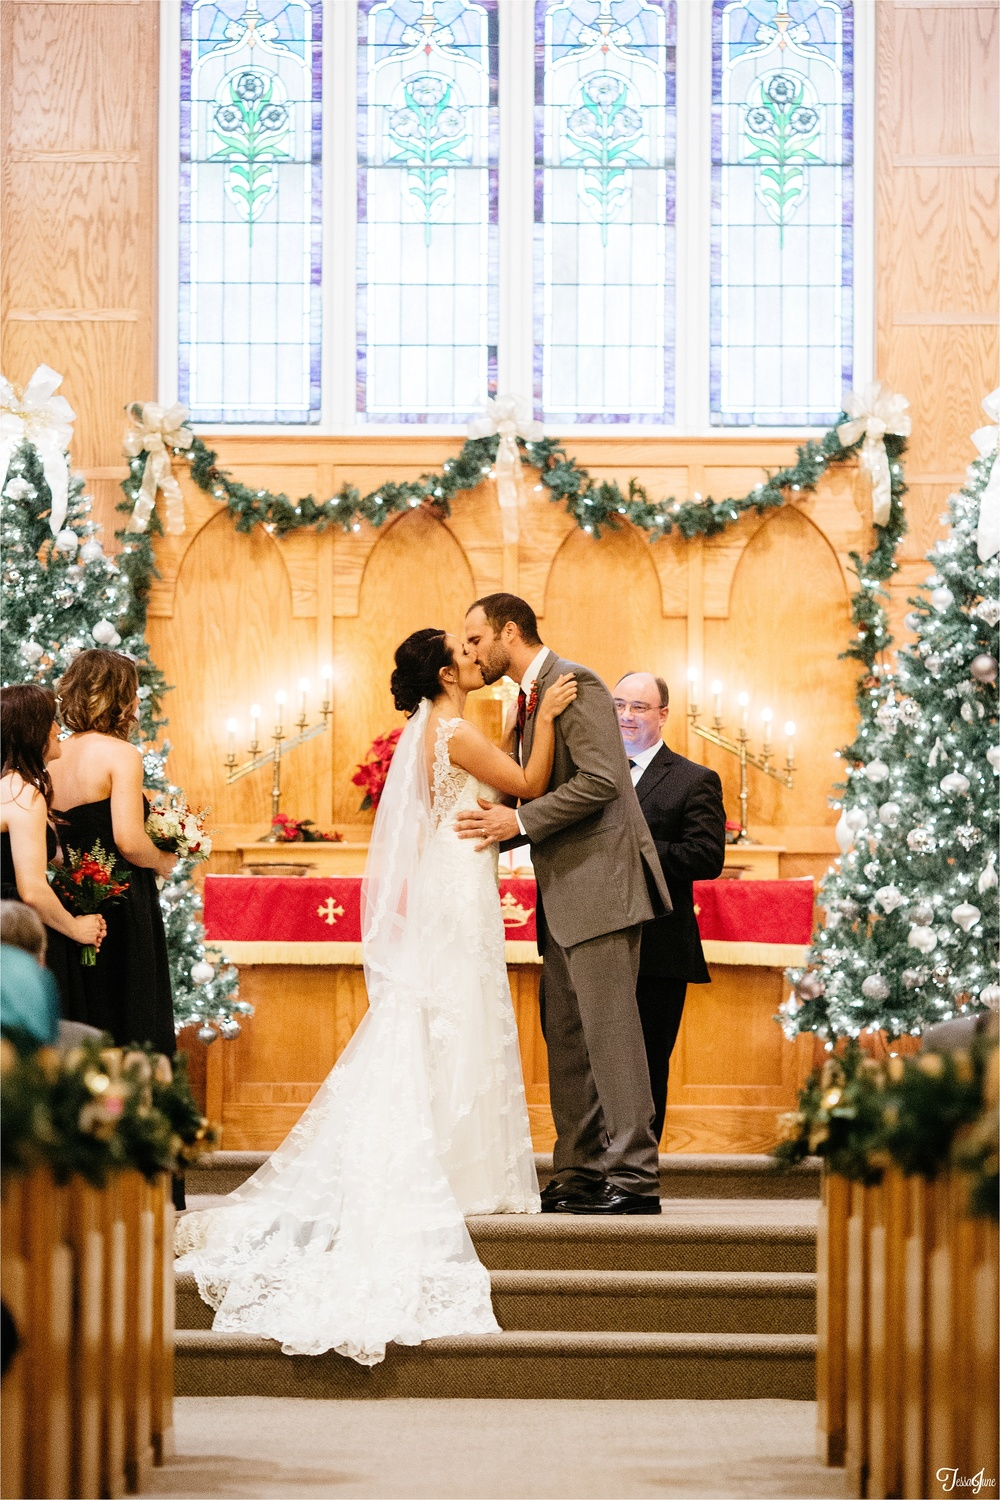 st-cloud-minnesota-wedding-photography-hamburg-winter-buffalo-plaid-rustic